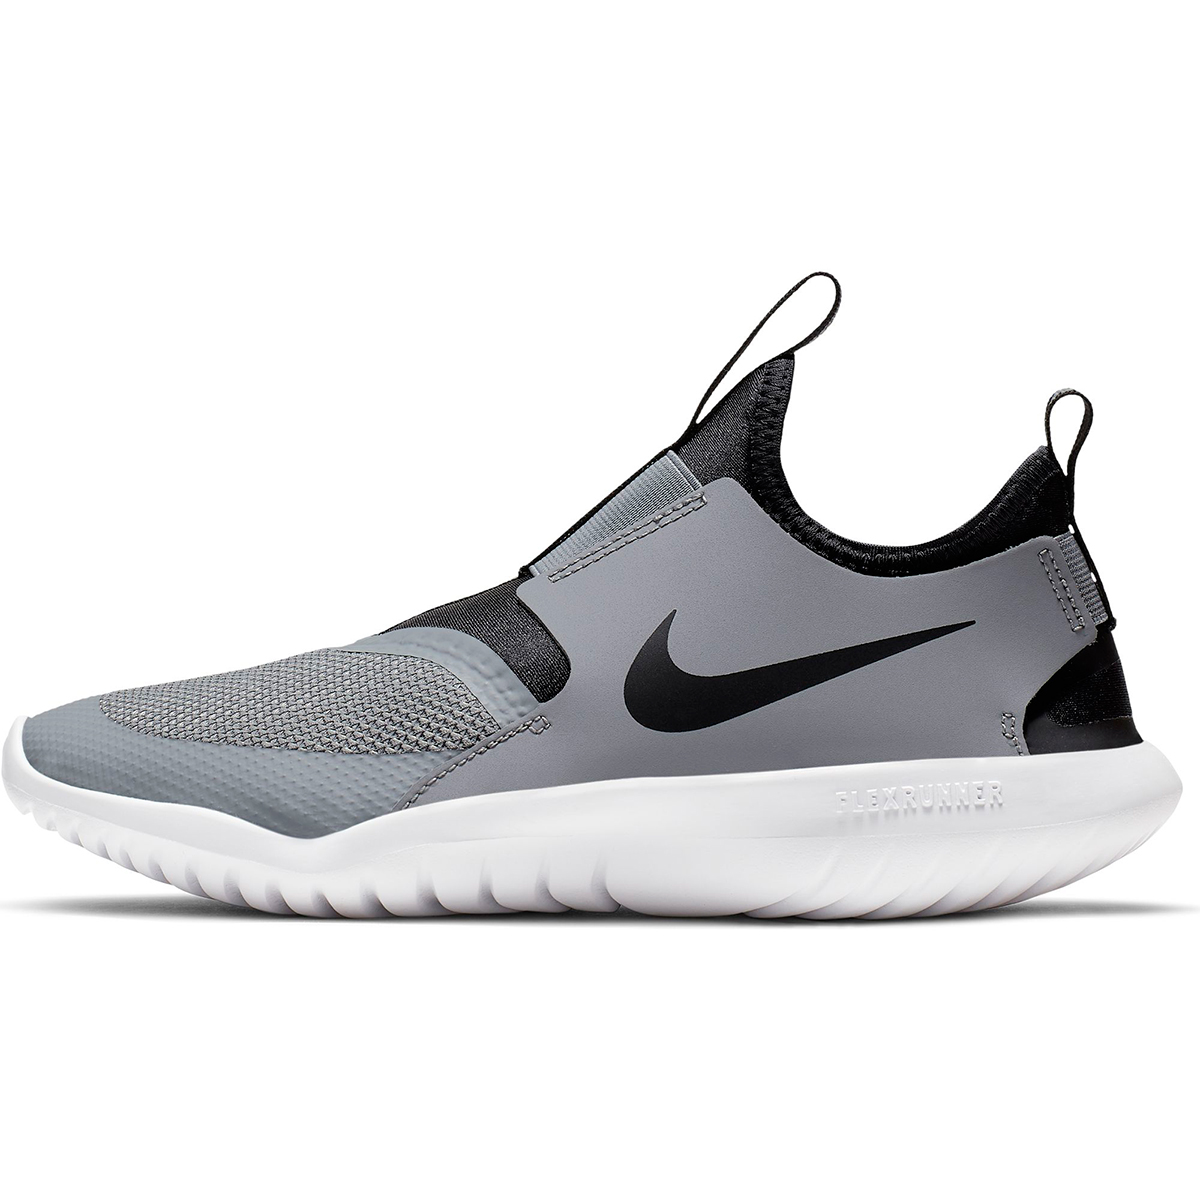 Kids Nike Grade School Flex Runner Shoe - Color: Cool Grey/Black (Regular Width) - Size: 3.5, Cool Grey/Black, large, image 2